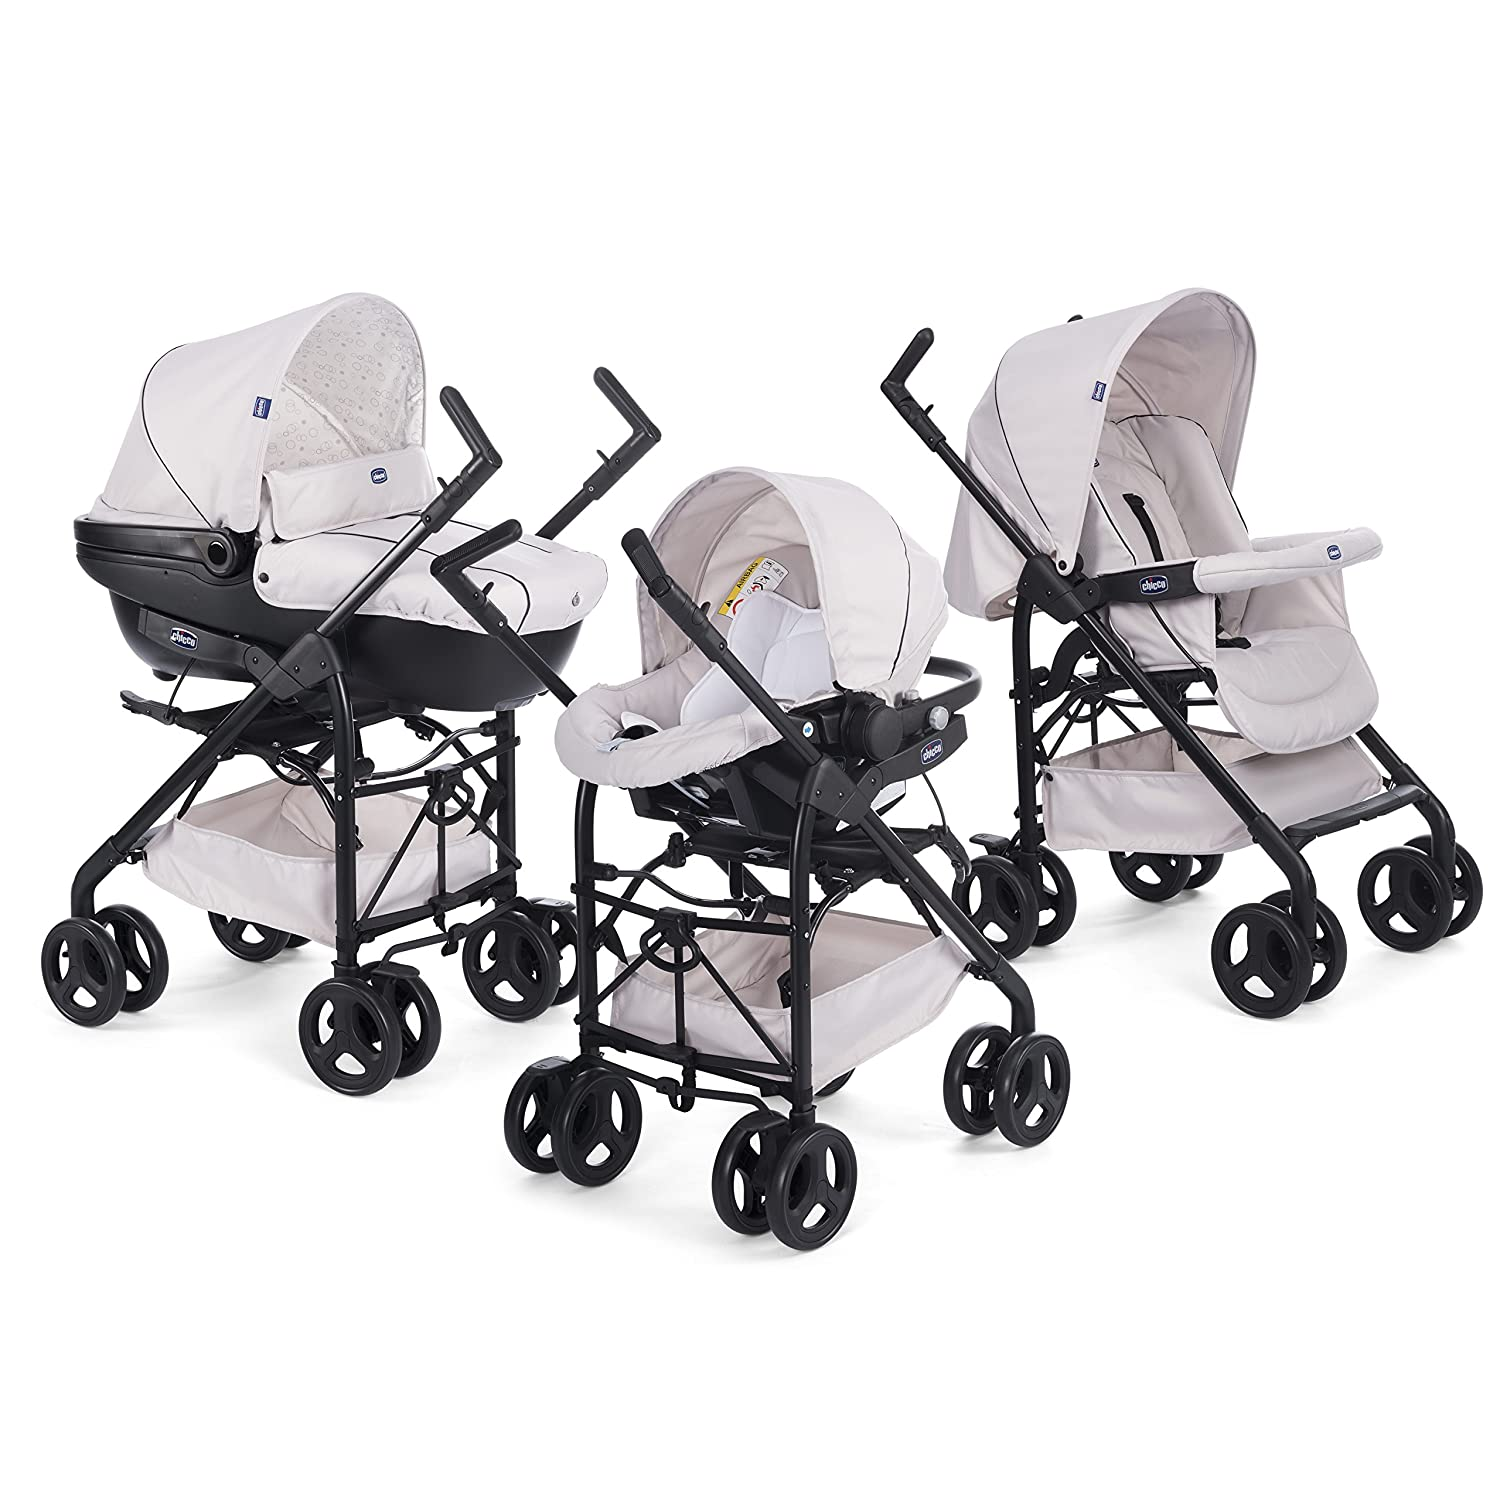 Chicco Trio-System Sprint Black with Car Kit 065f559ea2e